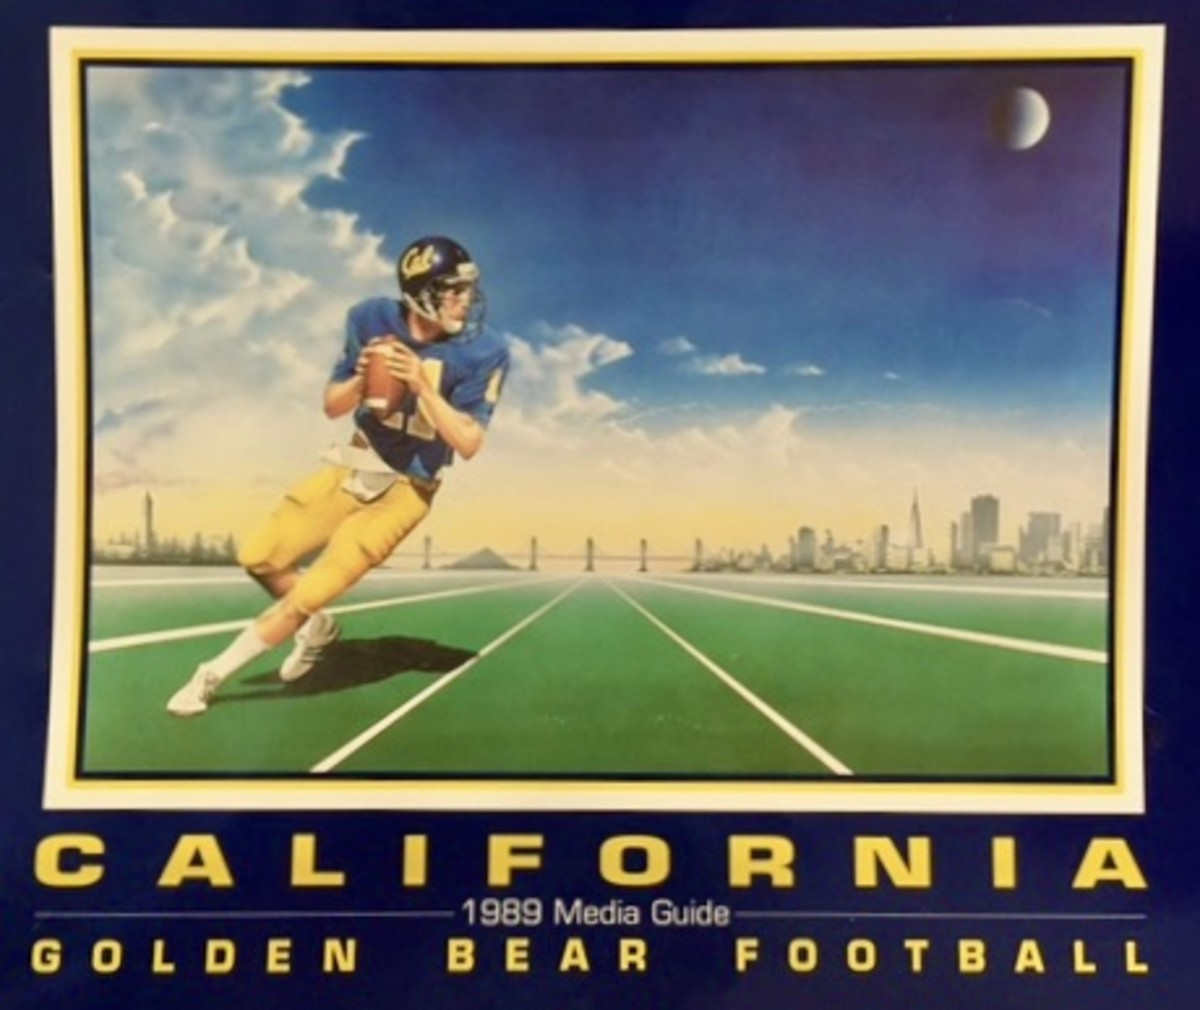 Troy Taylor on Cal's 1989 media guide cover